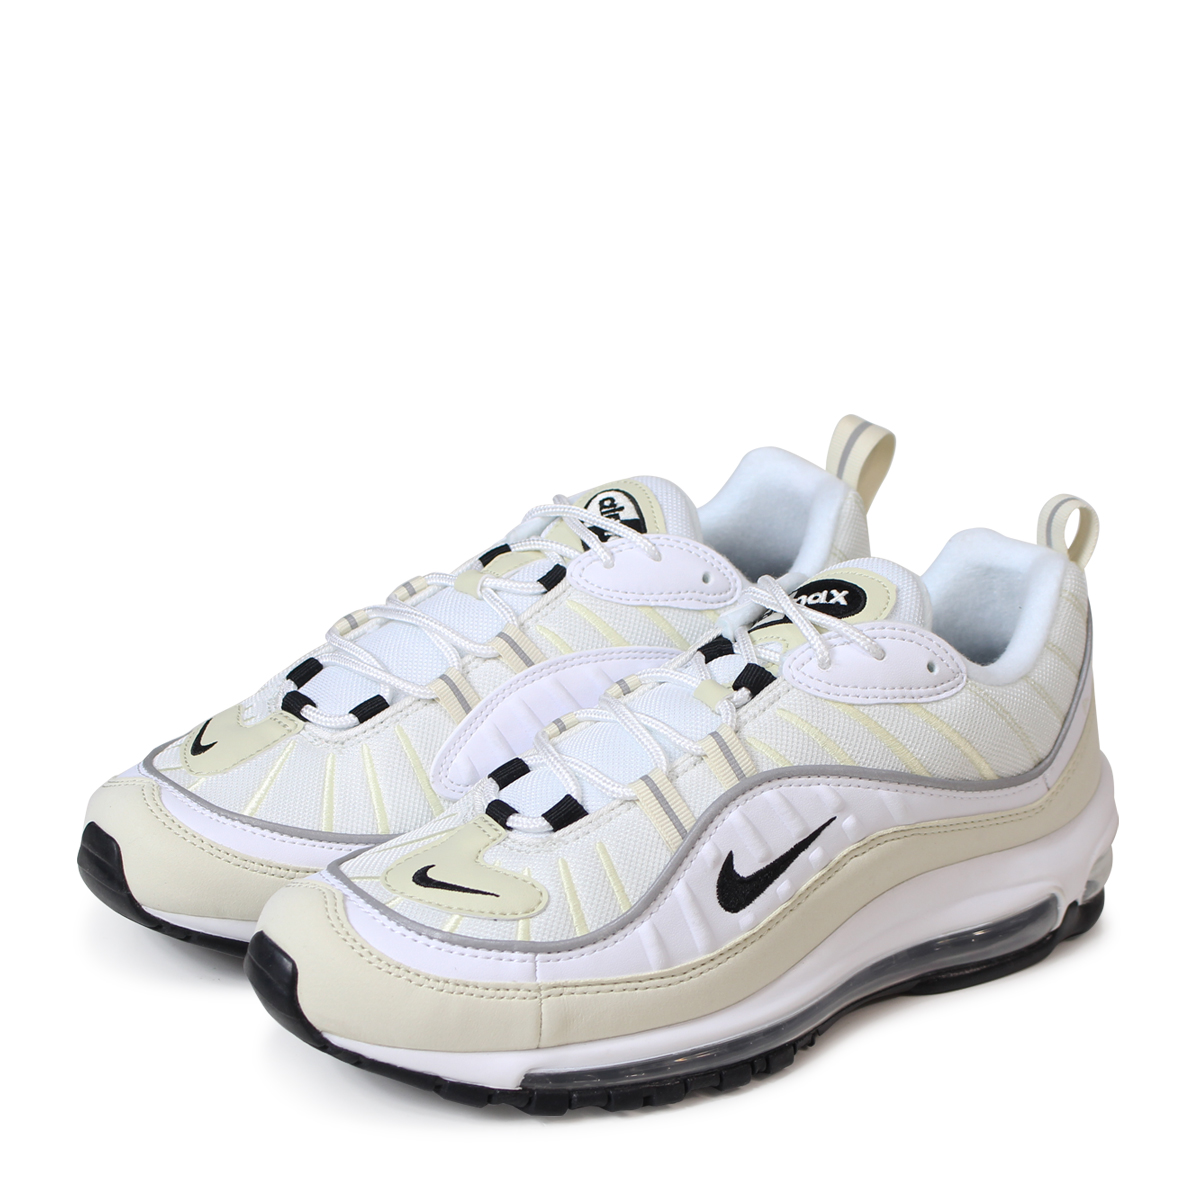 b417158766 ALLSPORTS: NIKE WMNS AIR MAX 98 Kie Ney AMAX 98 sneakers men AH6799-102  white [load planned Shinnyu load in reservation product 5/18 containing]  [185] ...